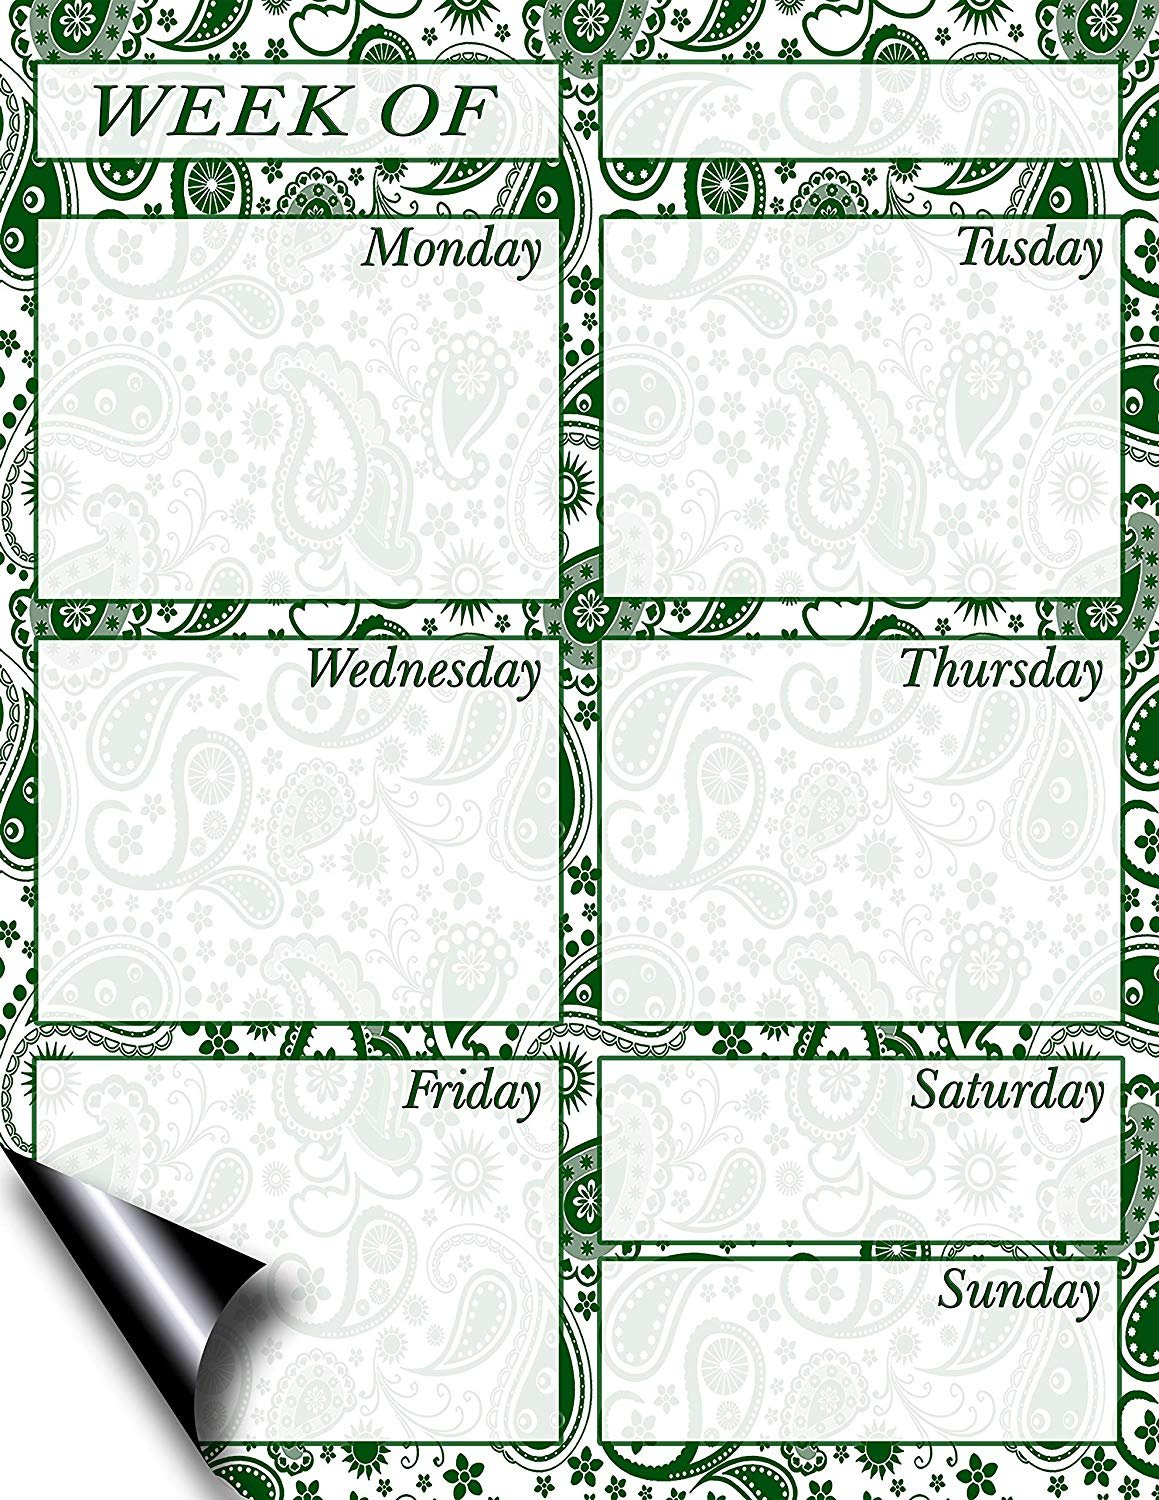 Chore Chart/Weekly Planner/to Do List/Message Board - (Edition #09) (Weekly Planner)